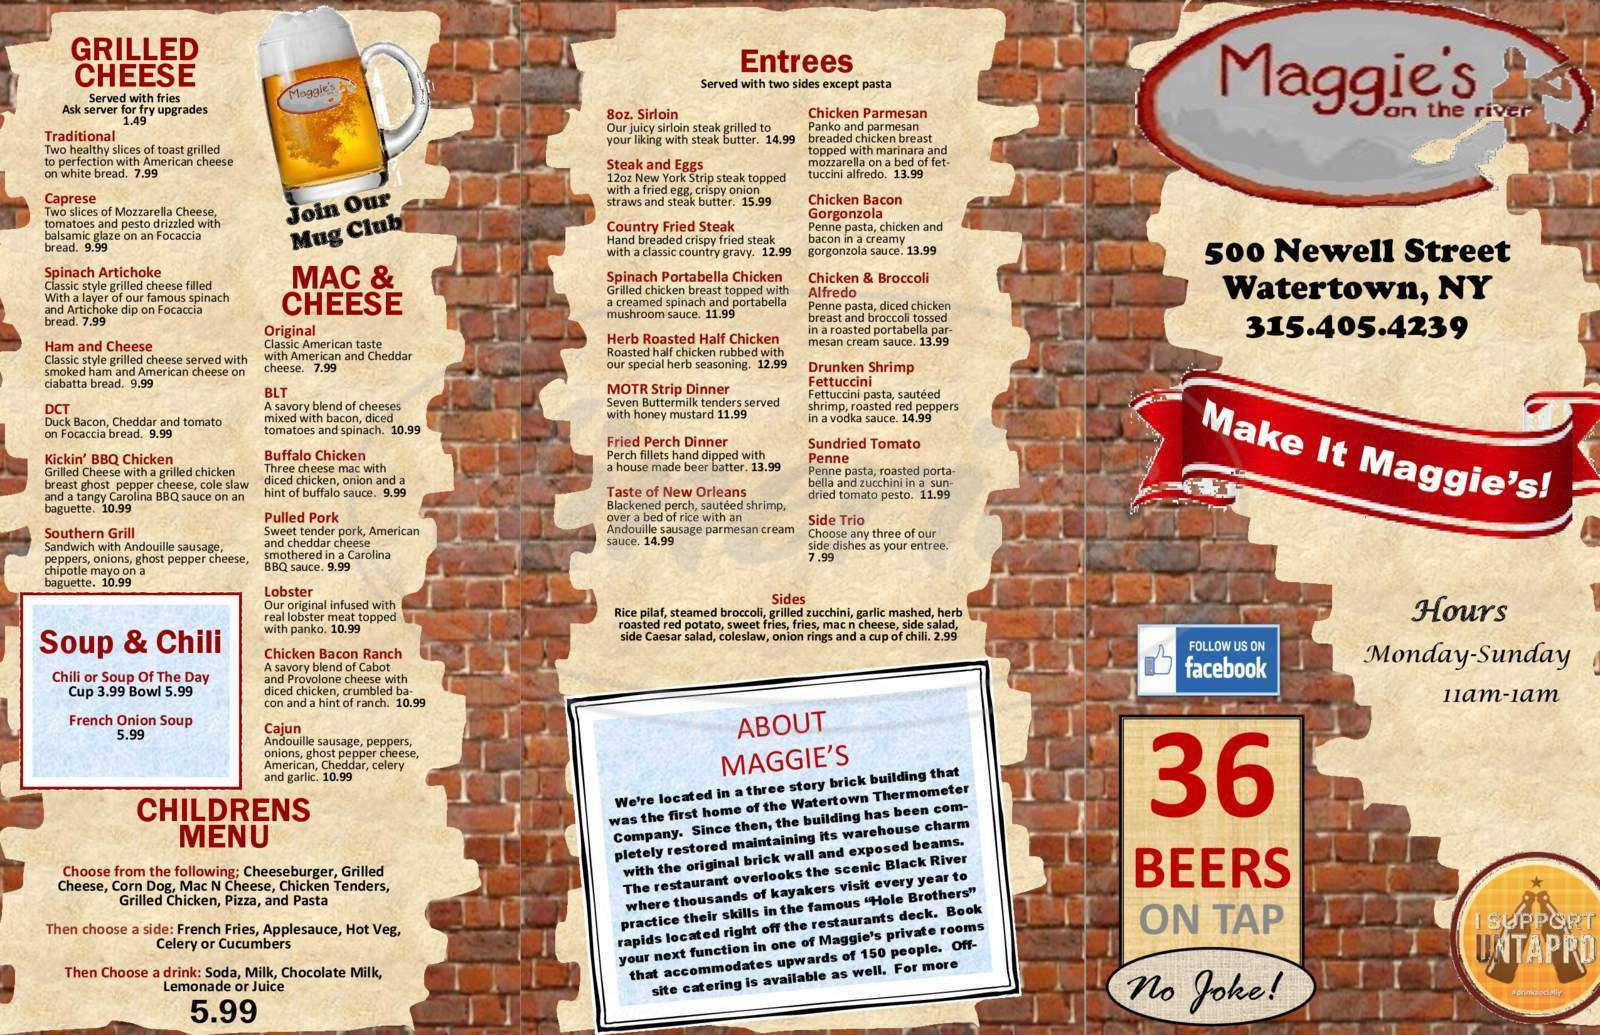 menu for Maggie's on the River